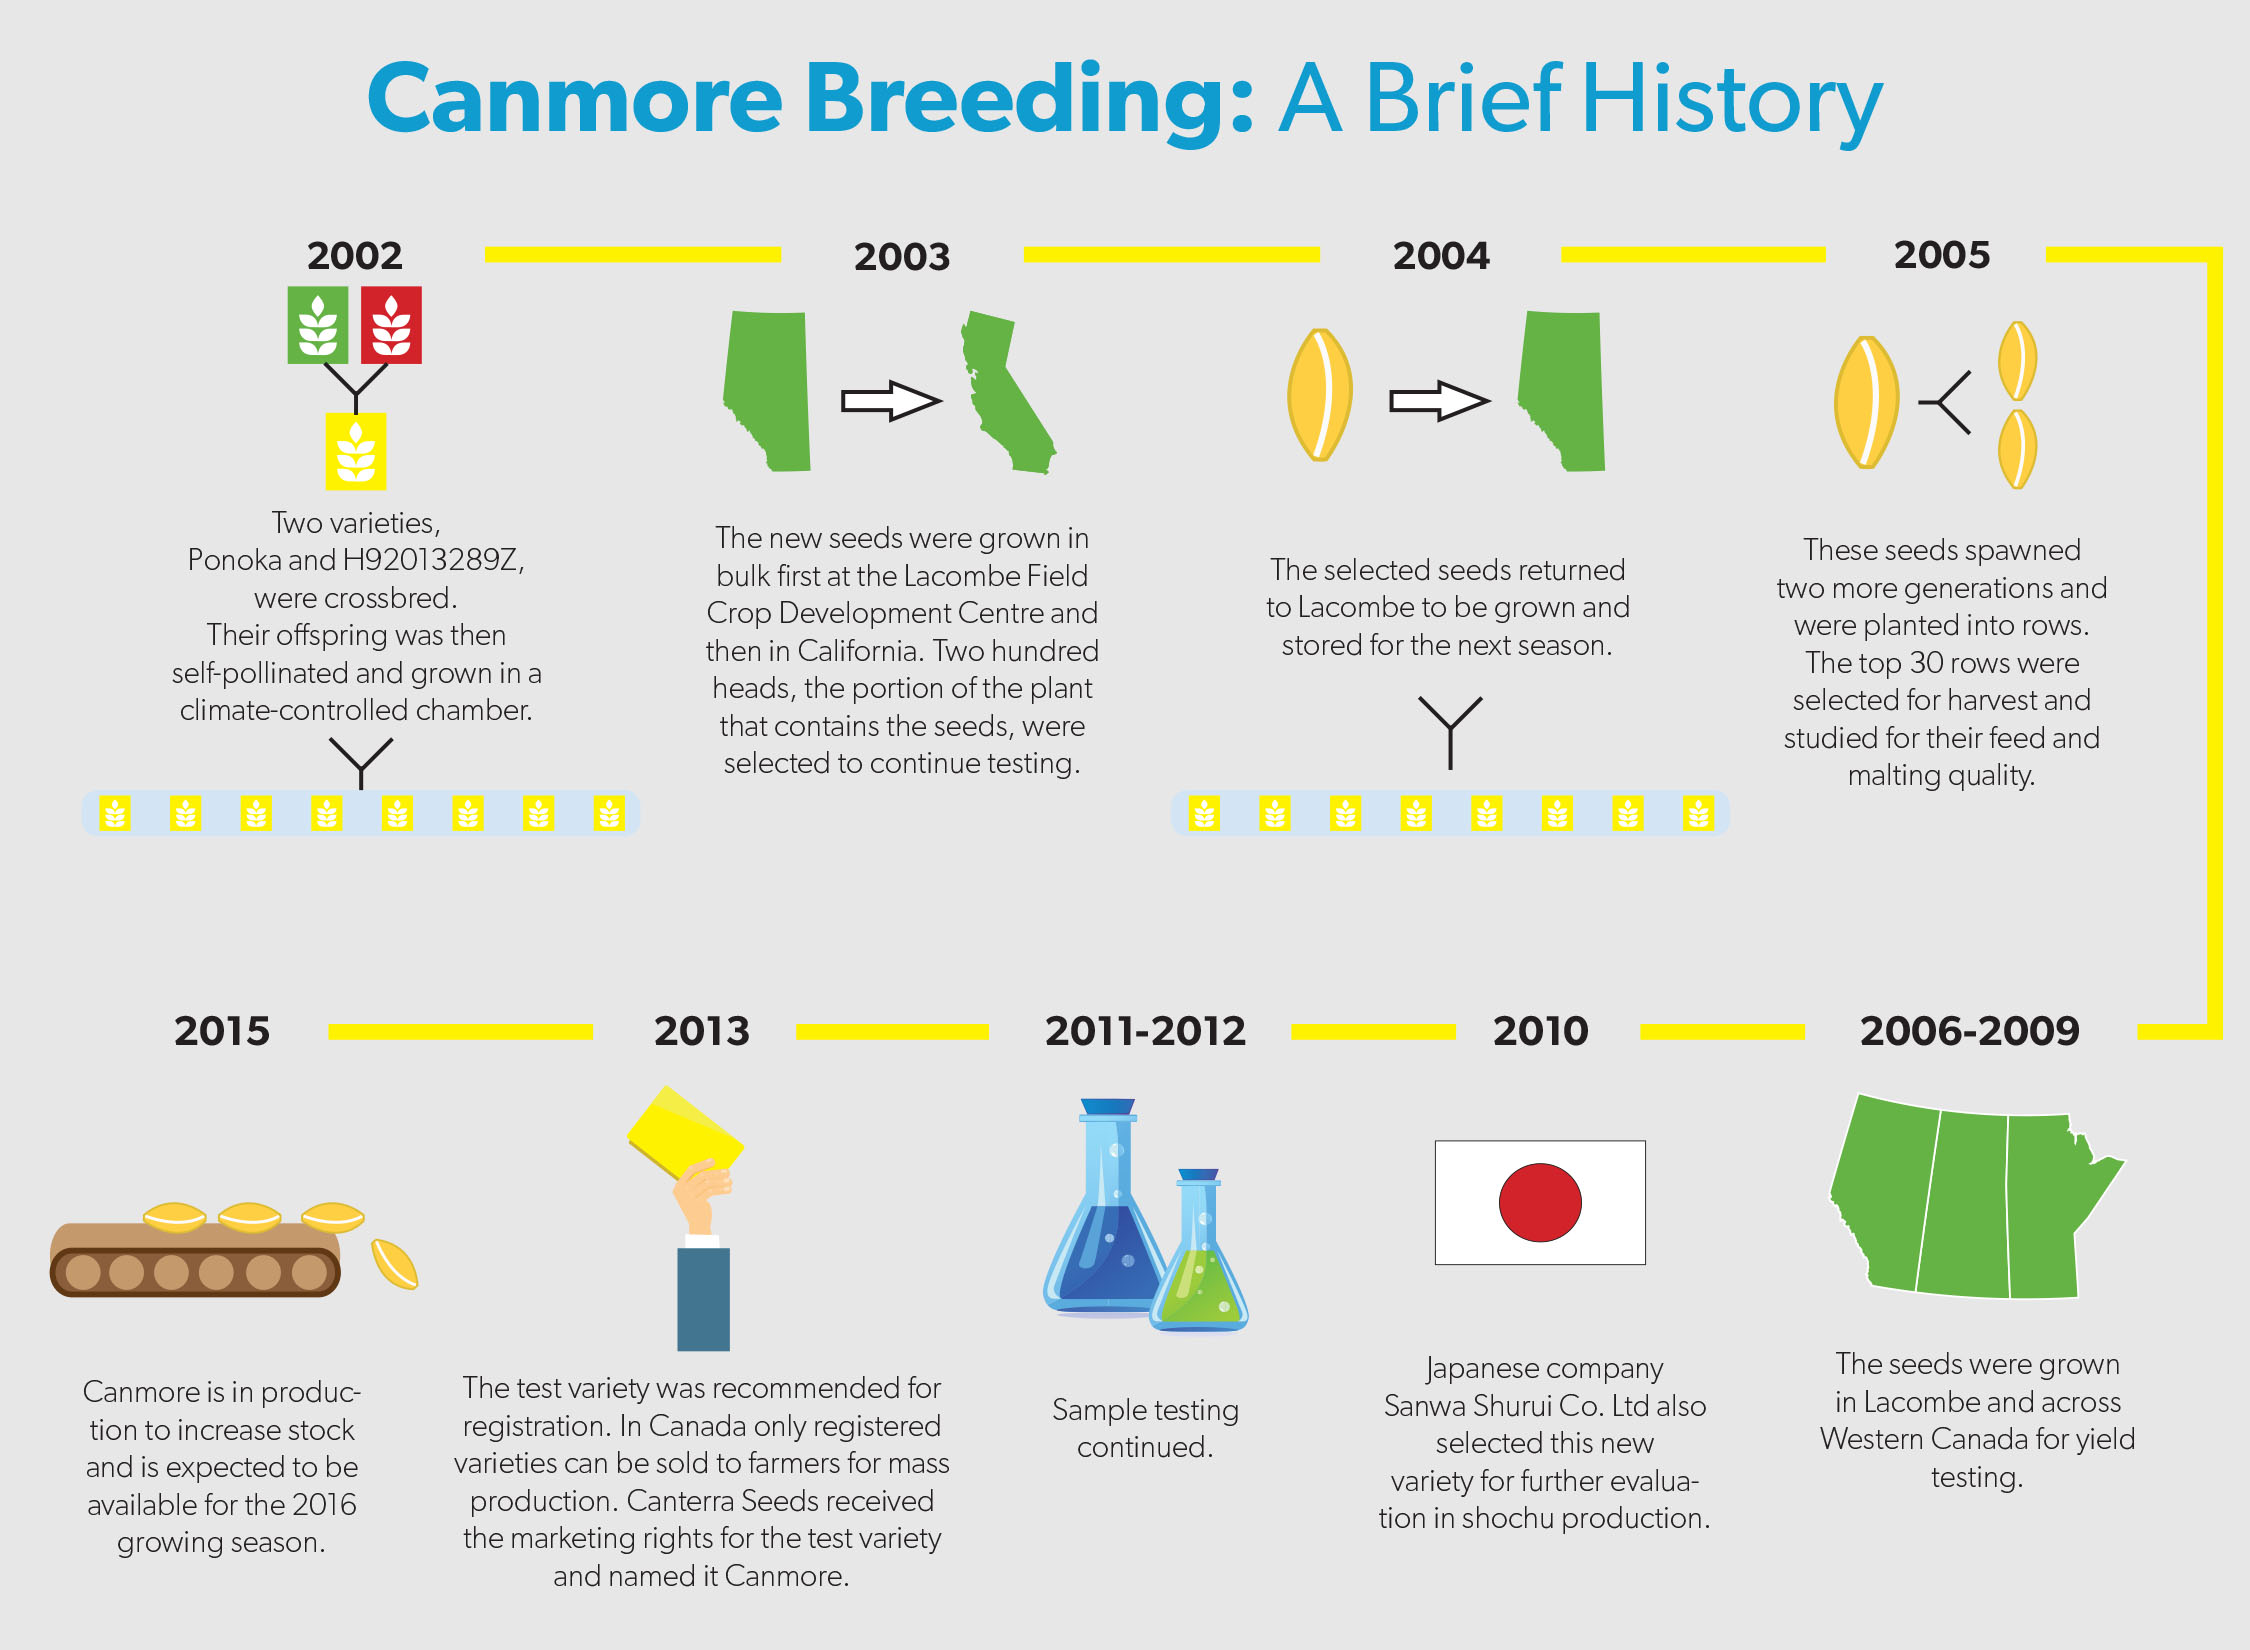 Canmore breeding history